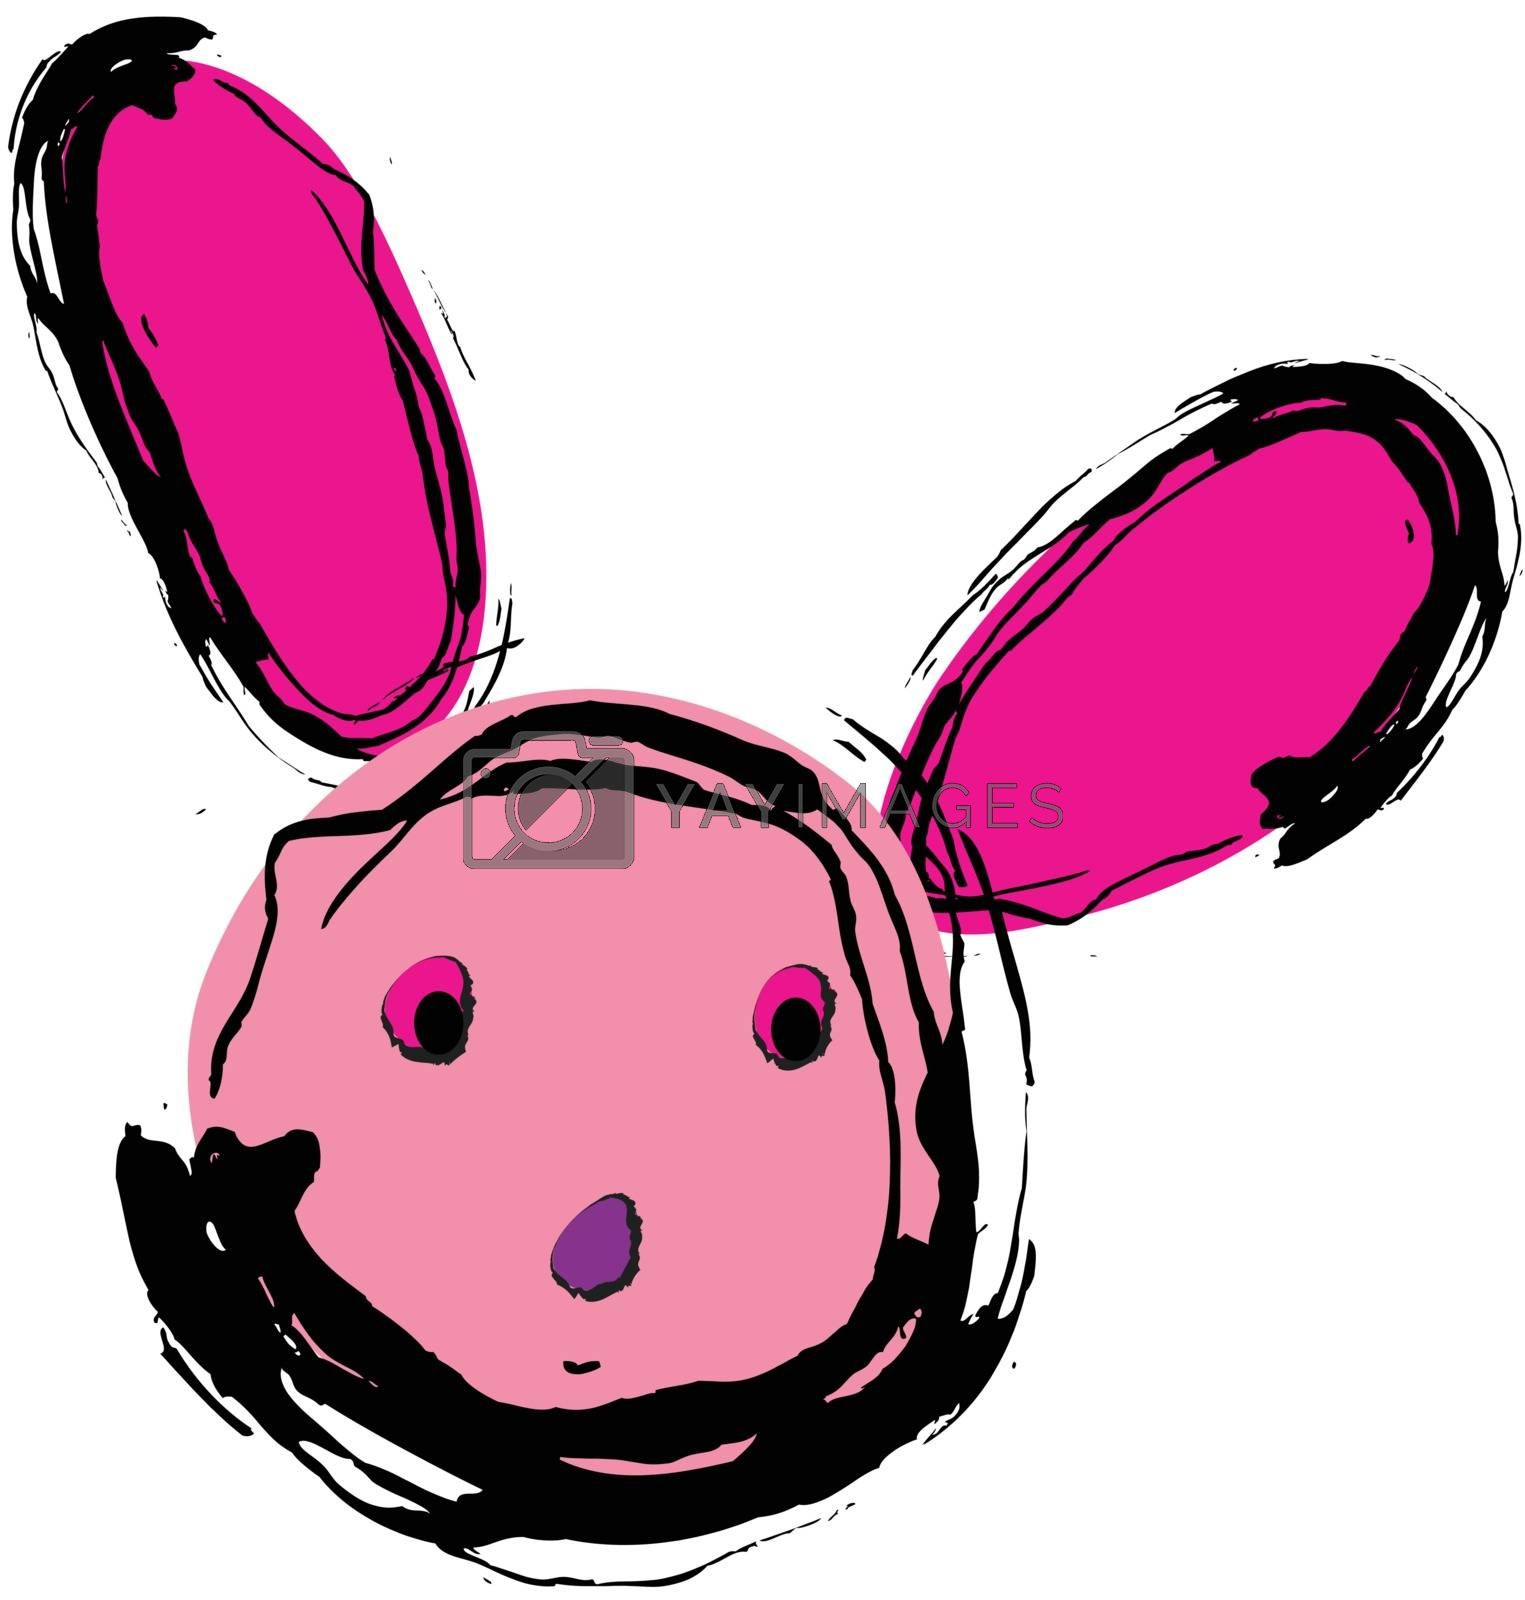 Hand drawn style of pink rabbit on white background